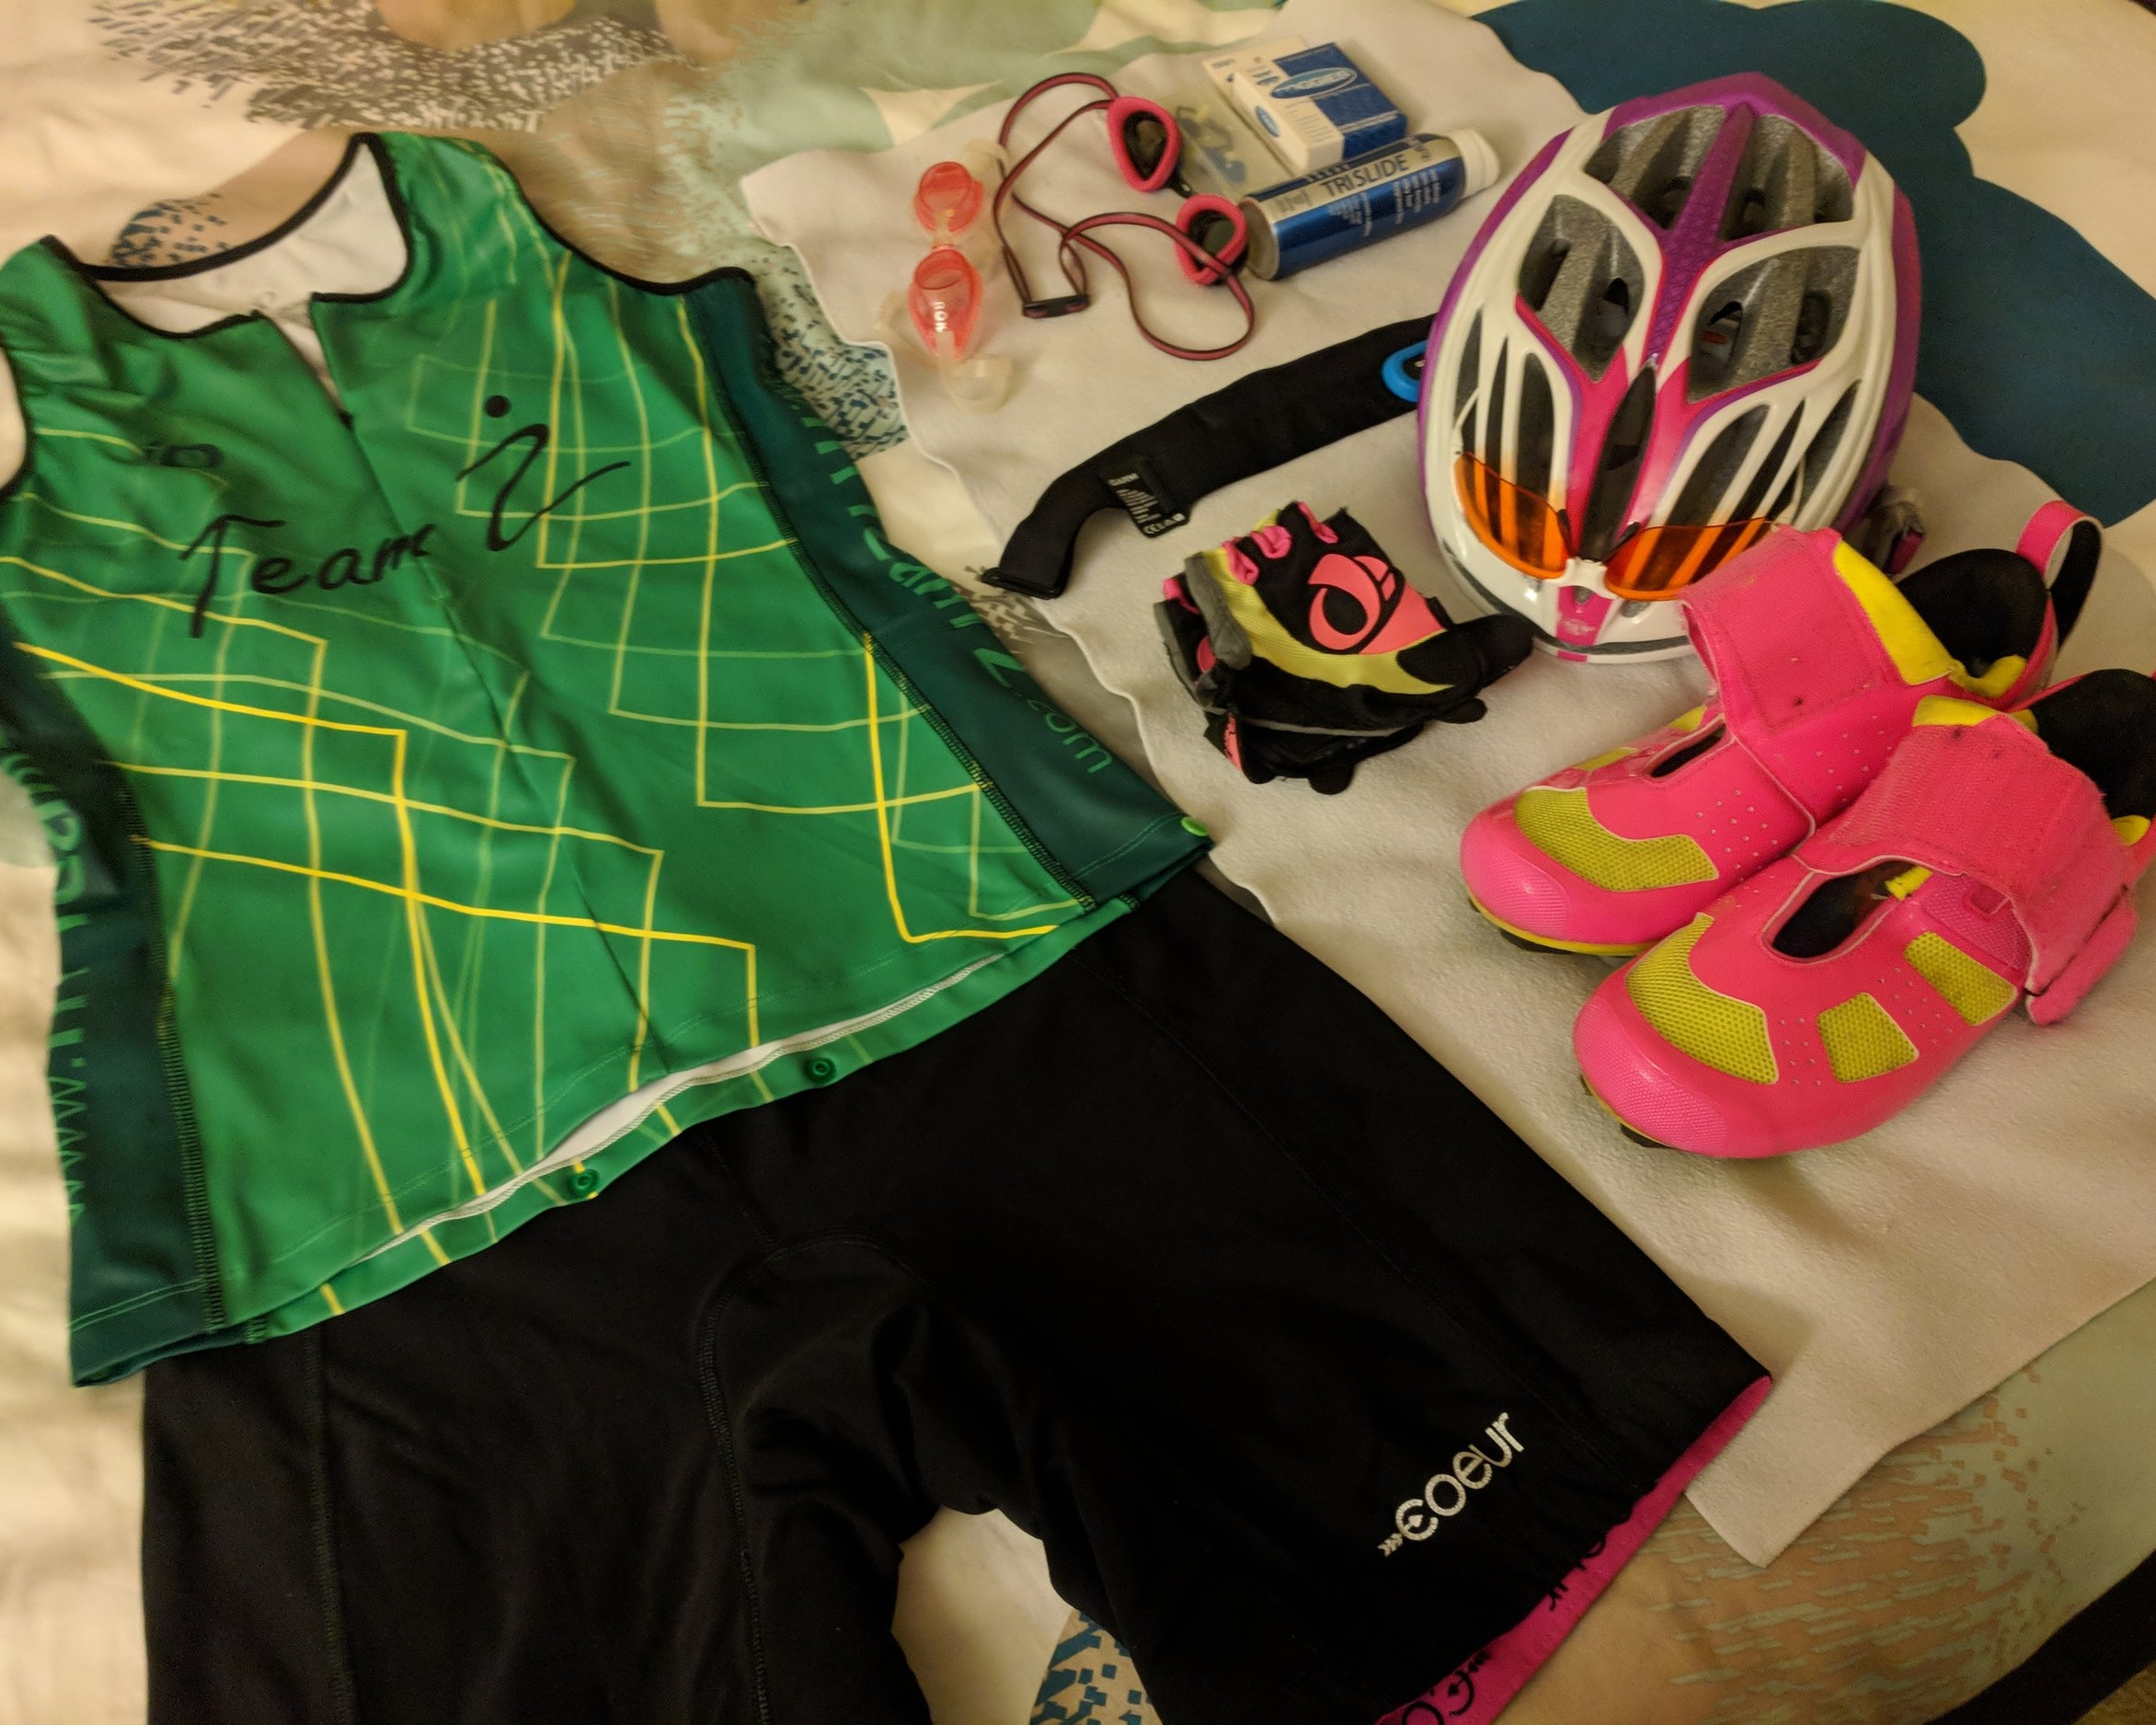 Less stuff than for a triathlon….but not by much!